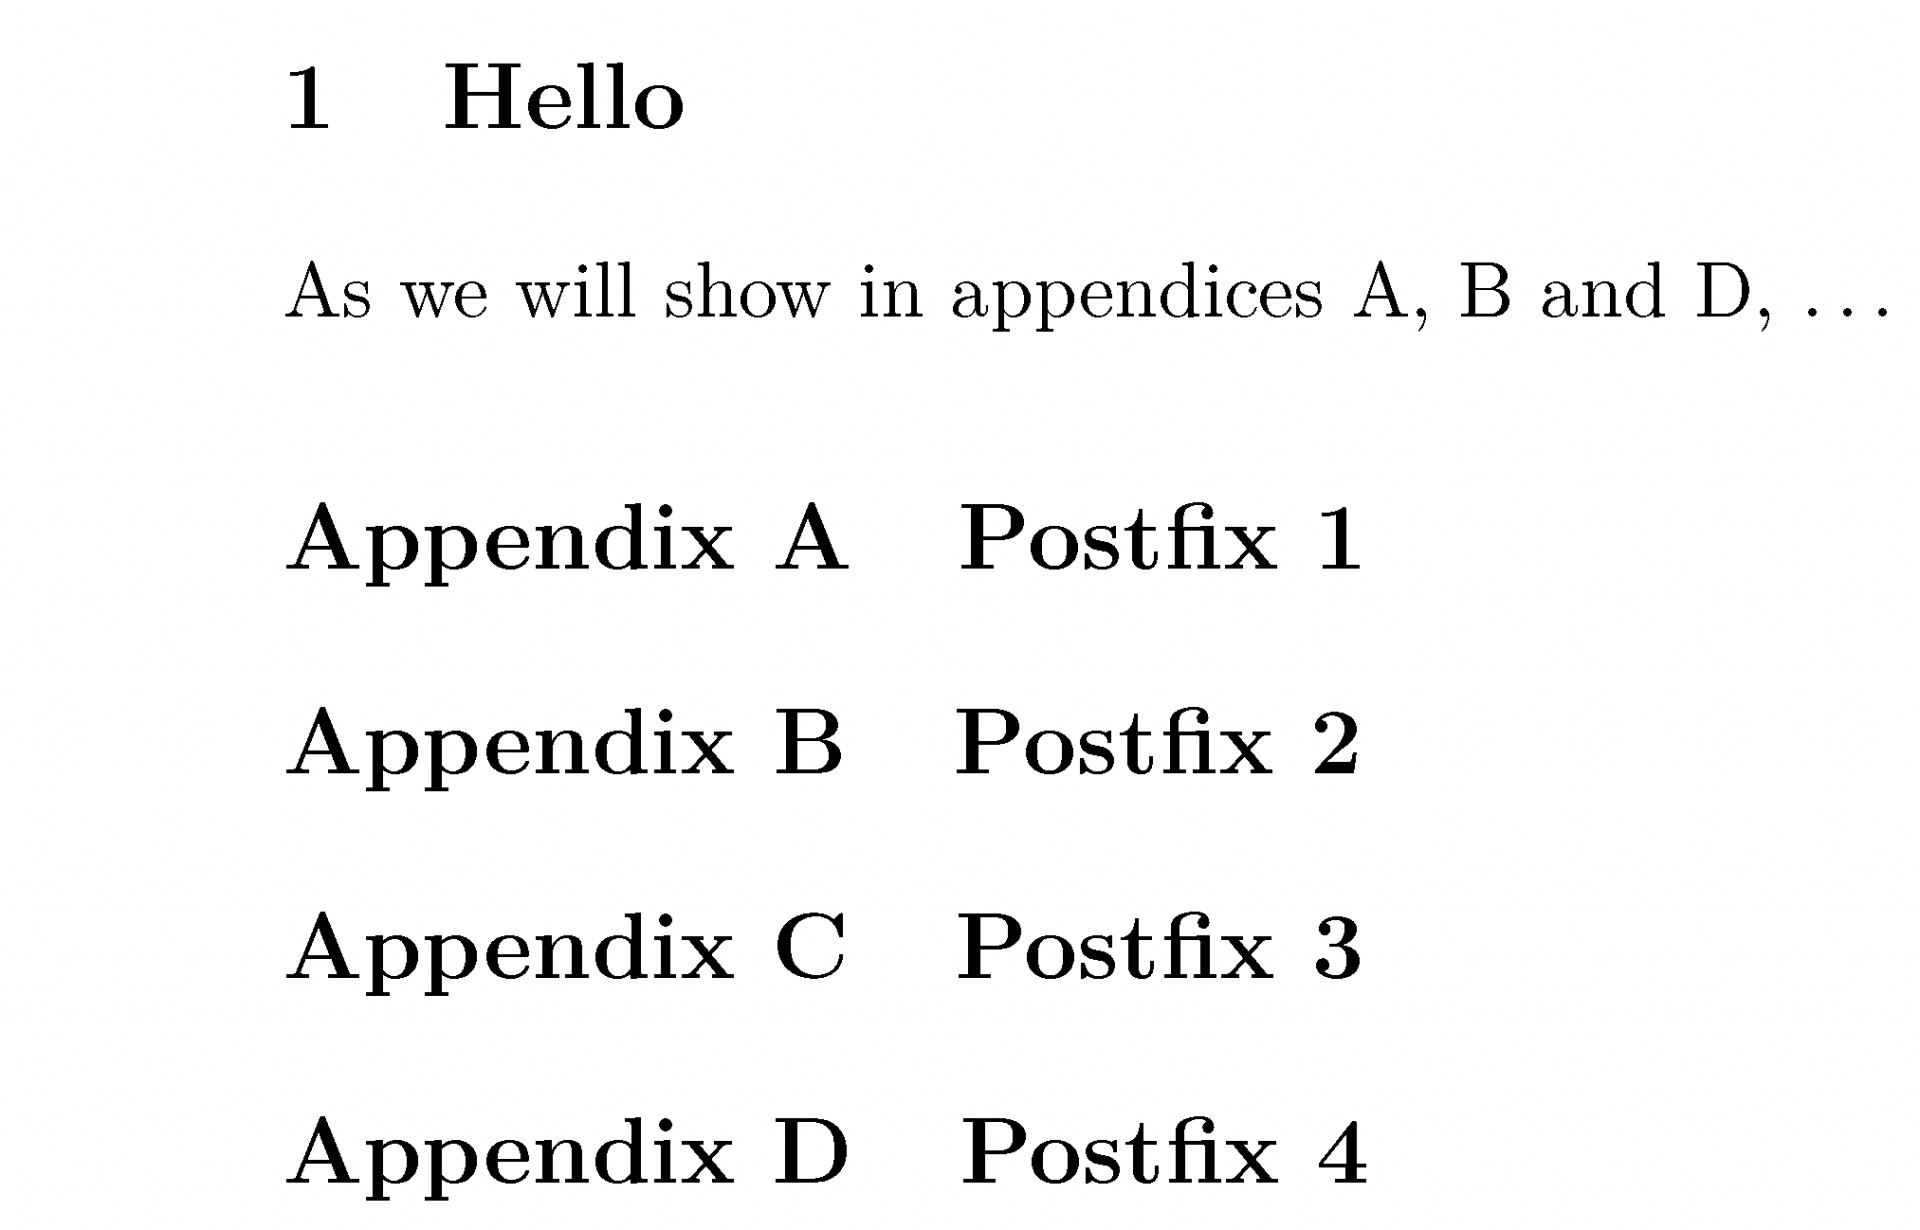 012 Research Paper Appendices In Sample Stupendous Appendix Meaning Example 1920